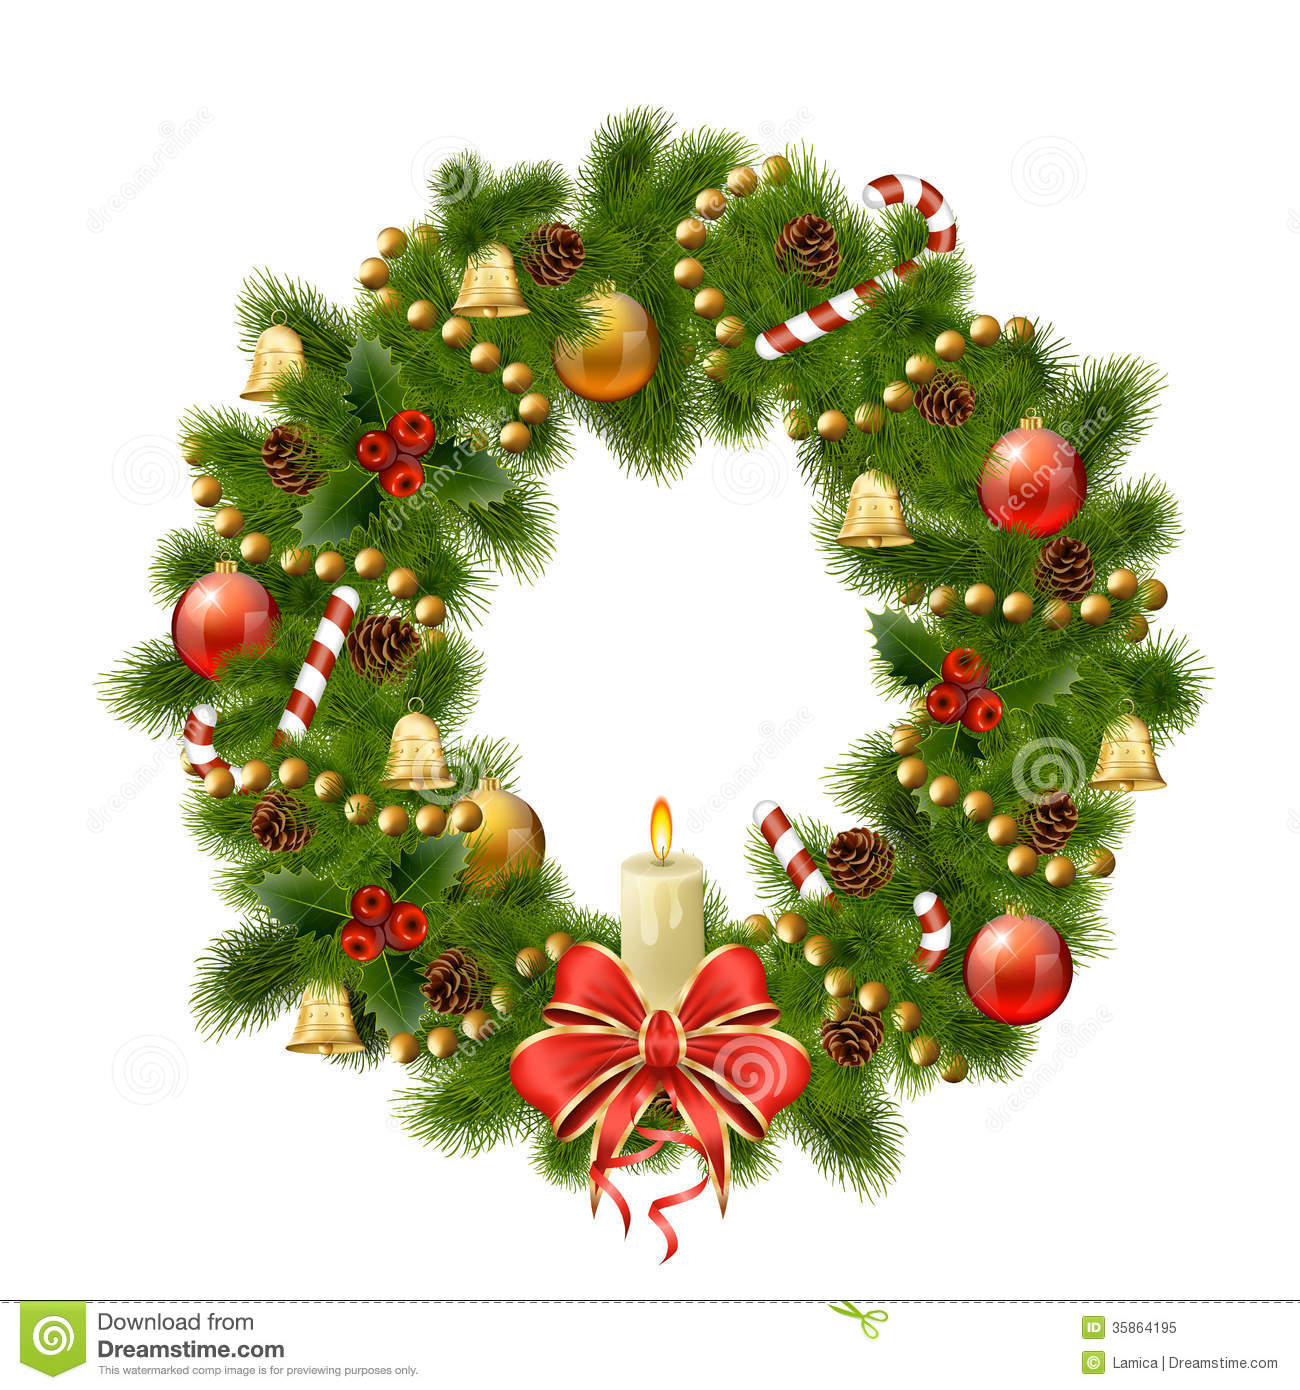 download christmas wreath on white background xmas decorations stock vector illustration of decoration